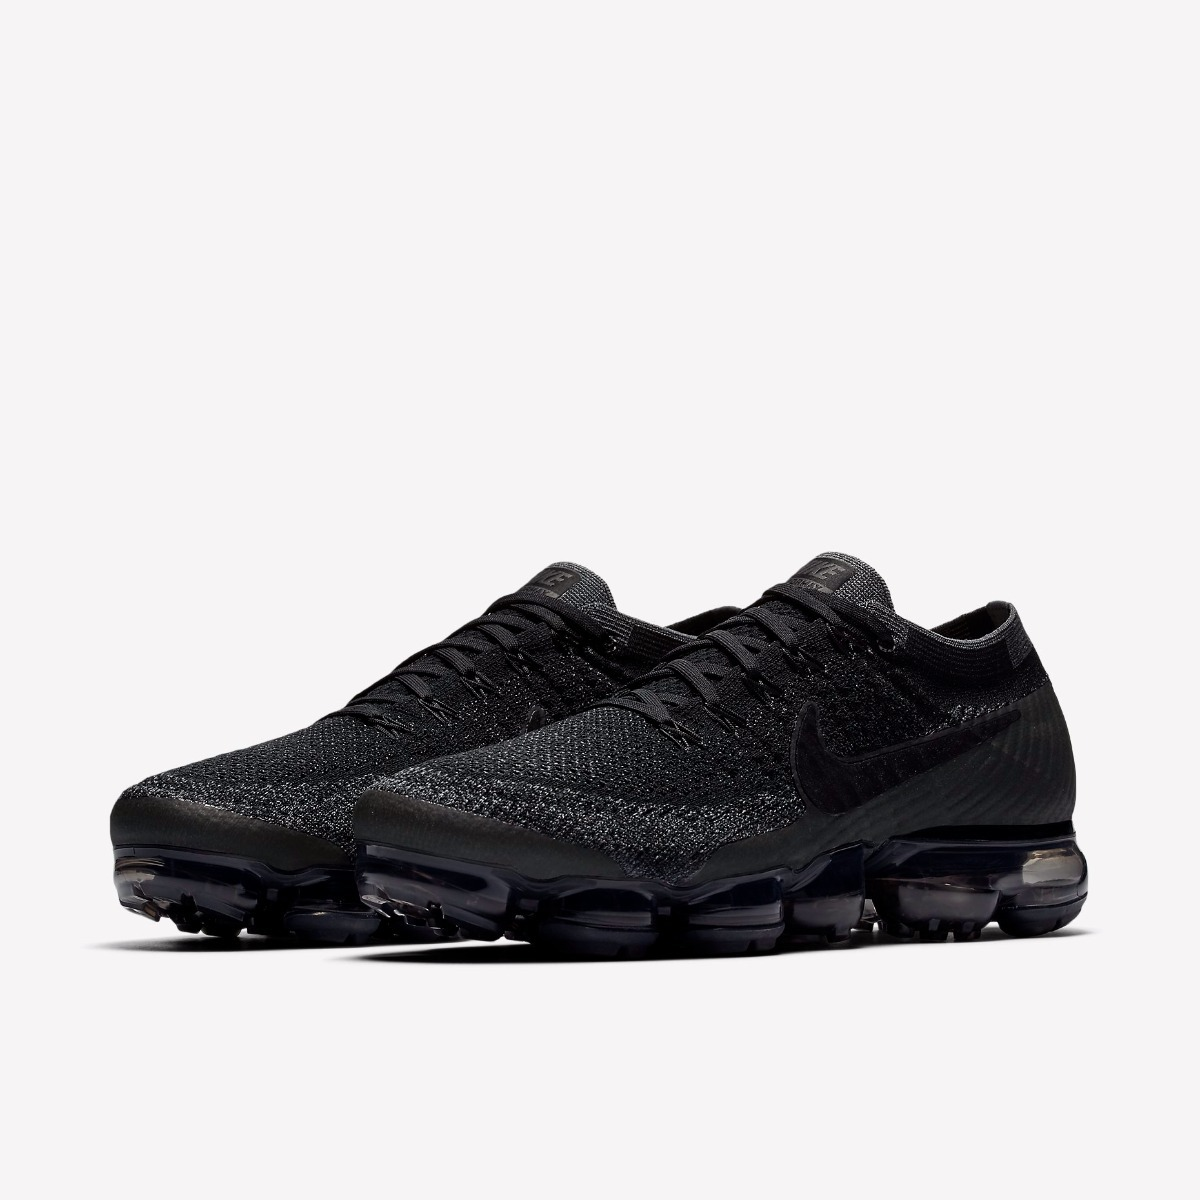 Zapatillas Nike Original Vapormax Zapatillas Air kuiPOXZ